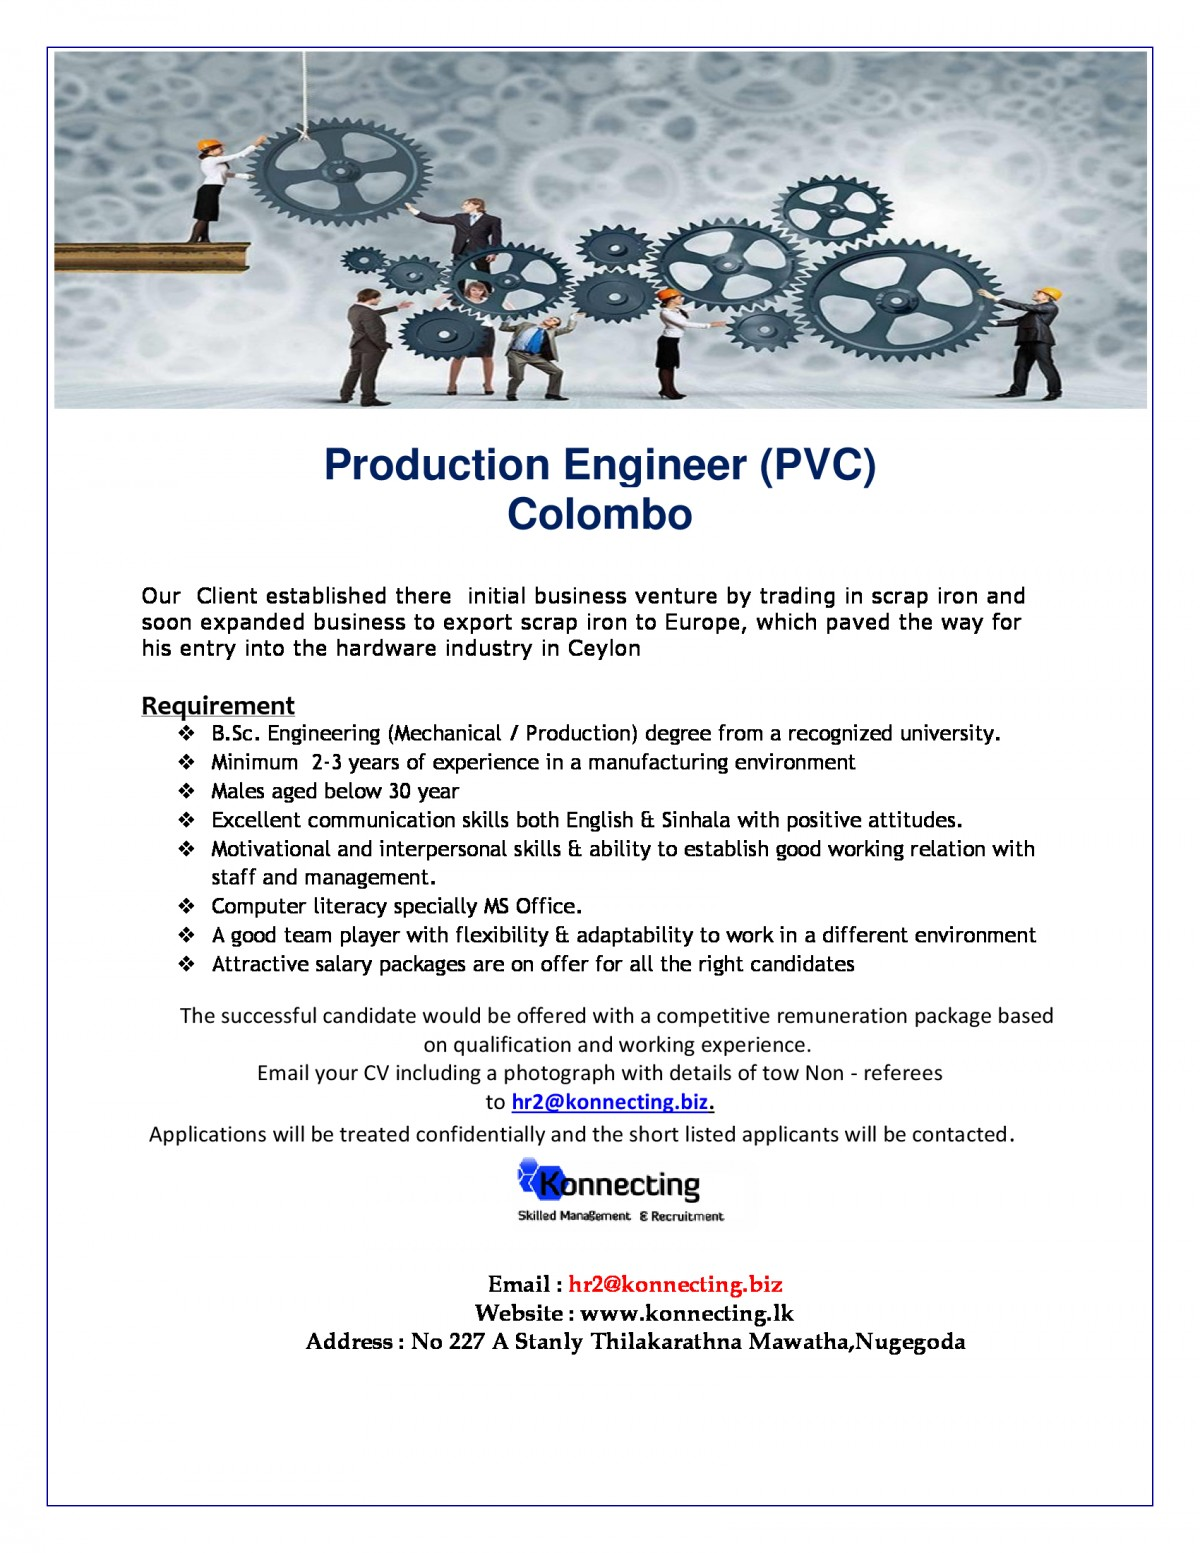 requirements bsc engineering mechanical production degree from a recognized university minimum 2 3 years of experience in a manufacturing - Production Engineering Job